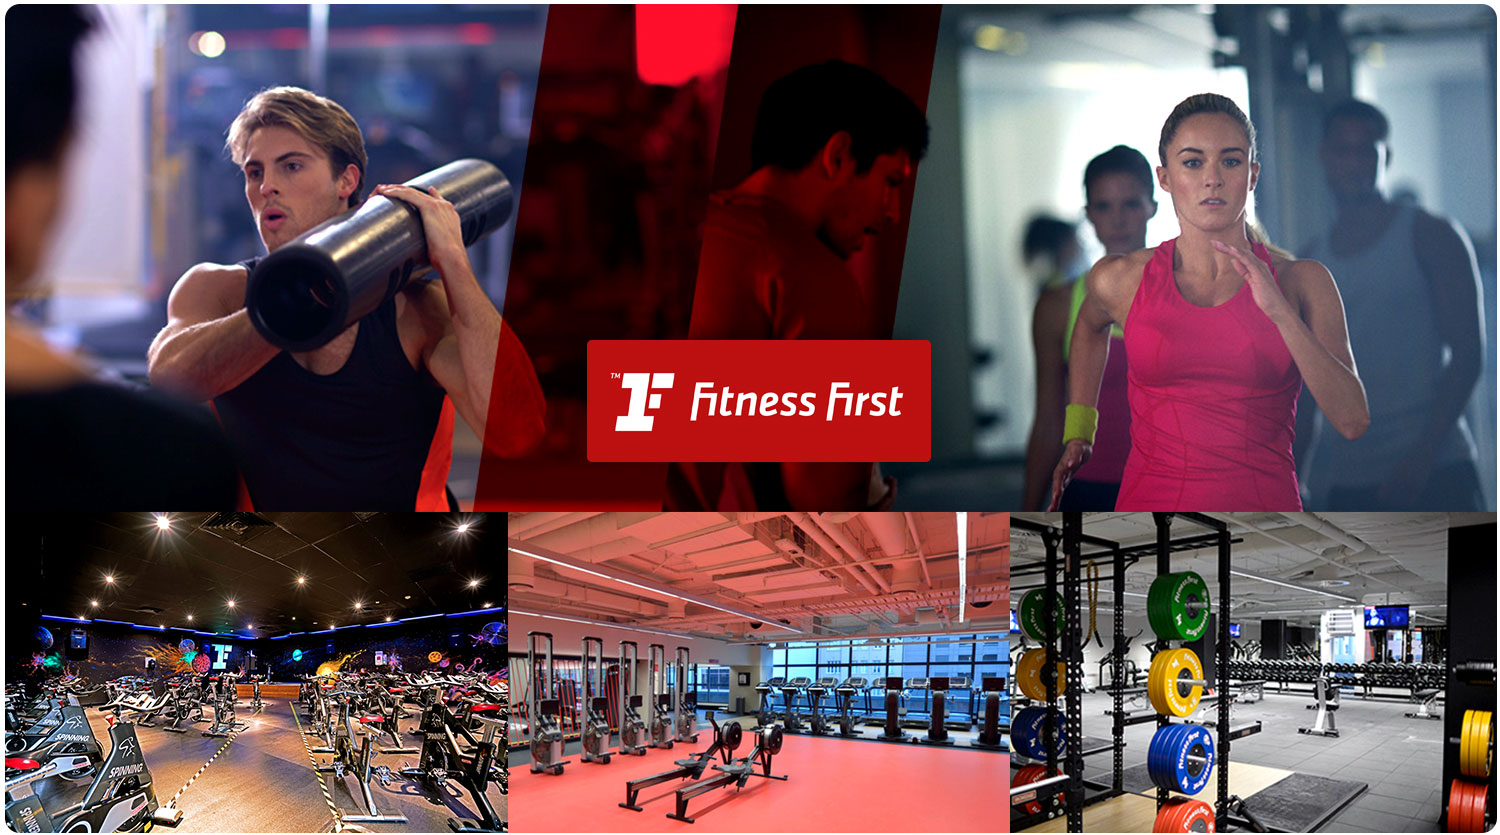 Start your Fitness Journey with Fitness First with only $14.95 for 14 days at Fitness First Highett VIC. Experience our first class gym and freestyle classes inc. Zumba, Pilates, Yoga, HIIT, Boxing, Les Mills and more. Take the first step with Fitness First Highett VIC.